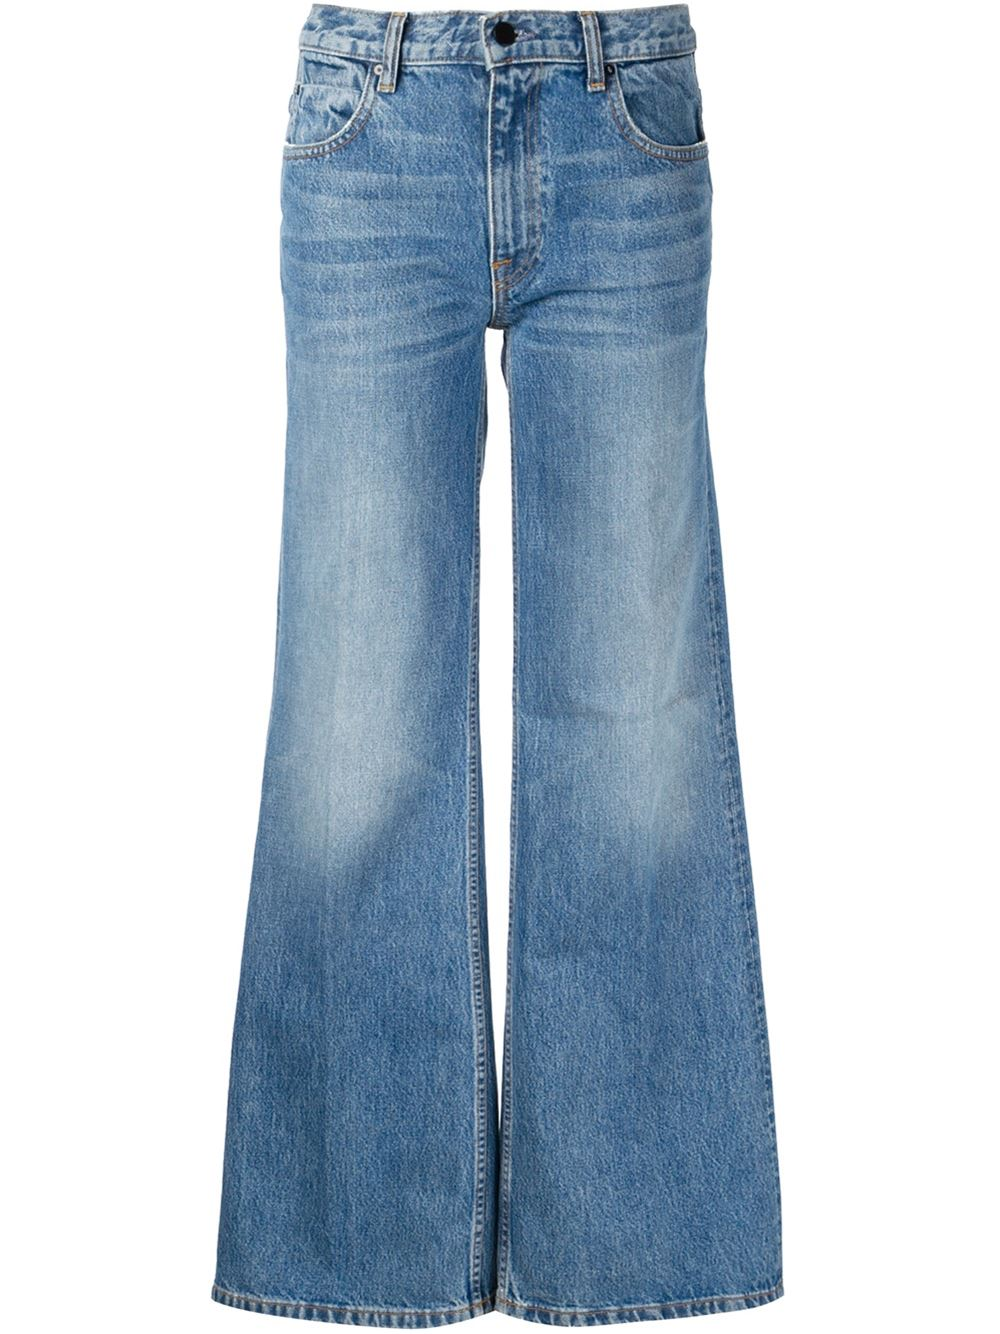 Alexander Wang 'Rave' Jeans